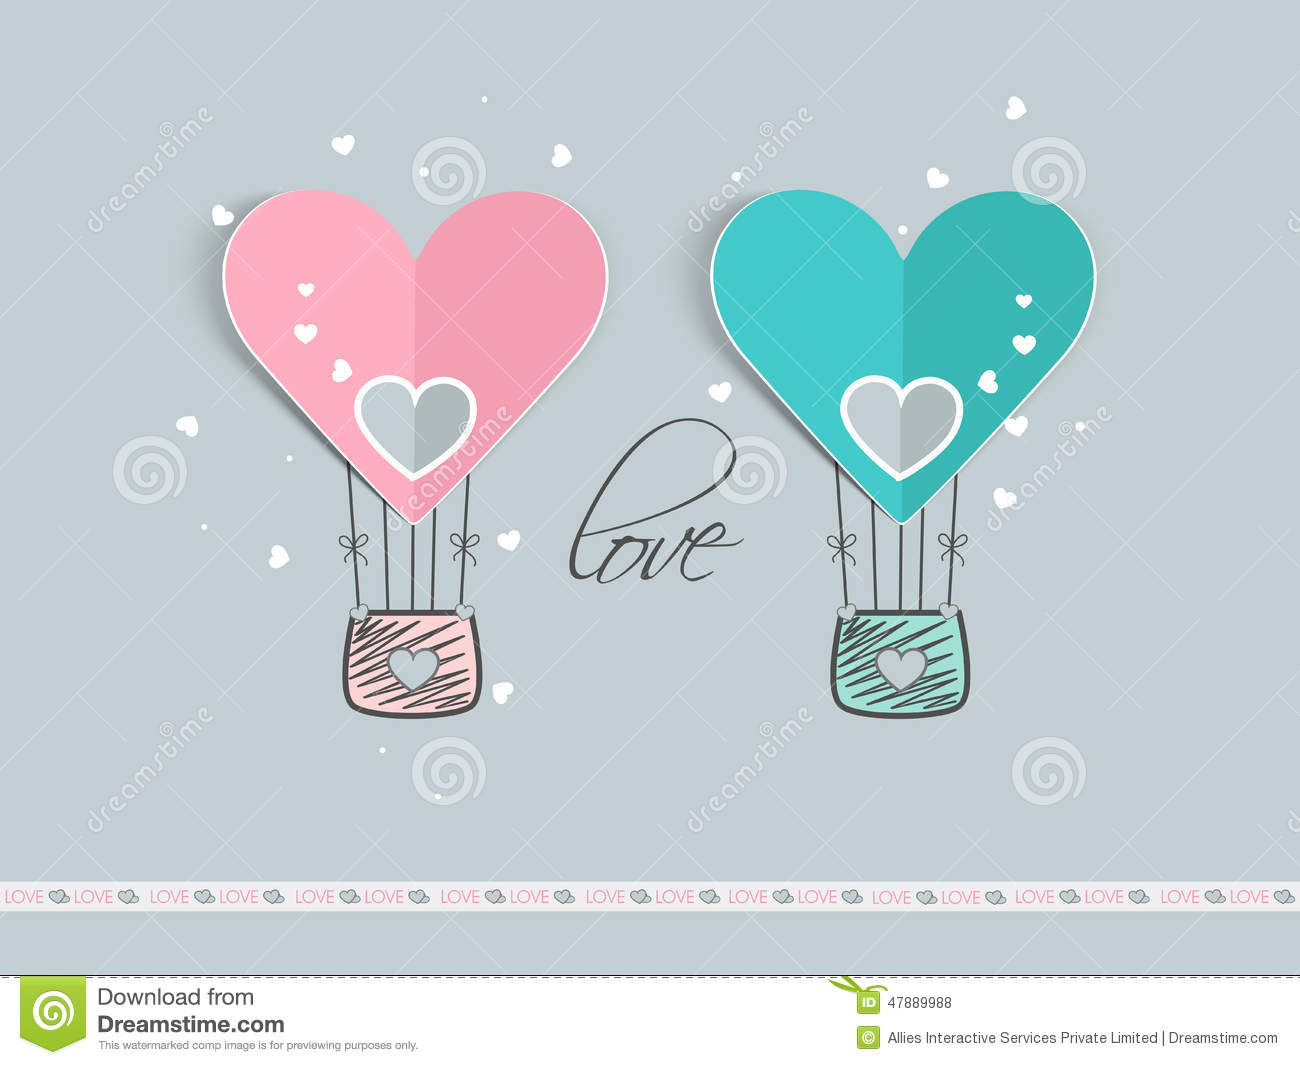 Valentines Day Celebration With Hot Air Balloon. Stock Photo - Image: 47889988